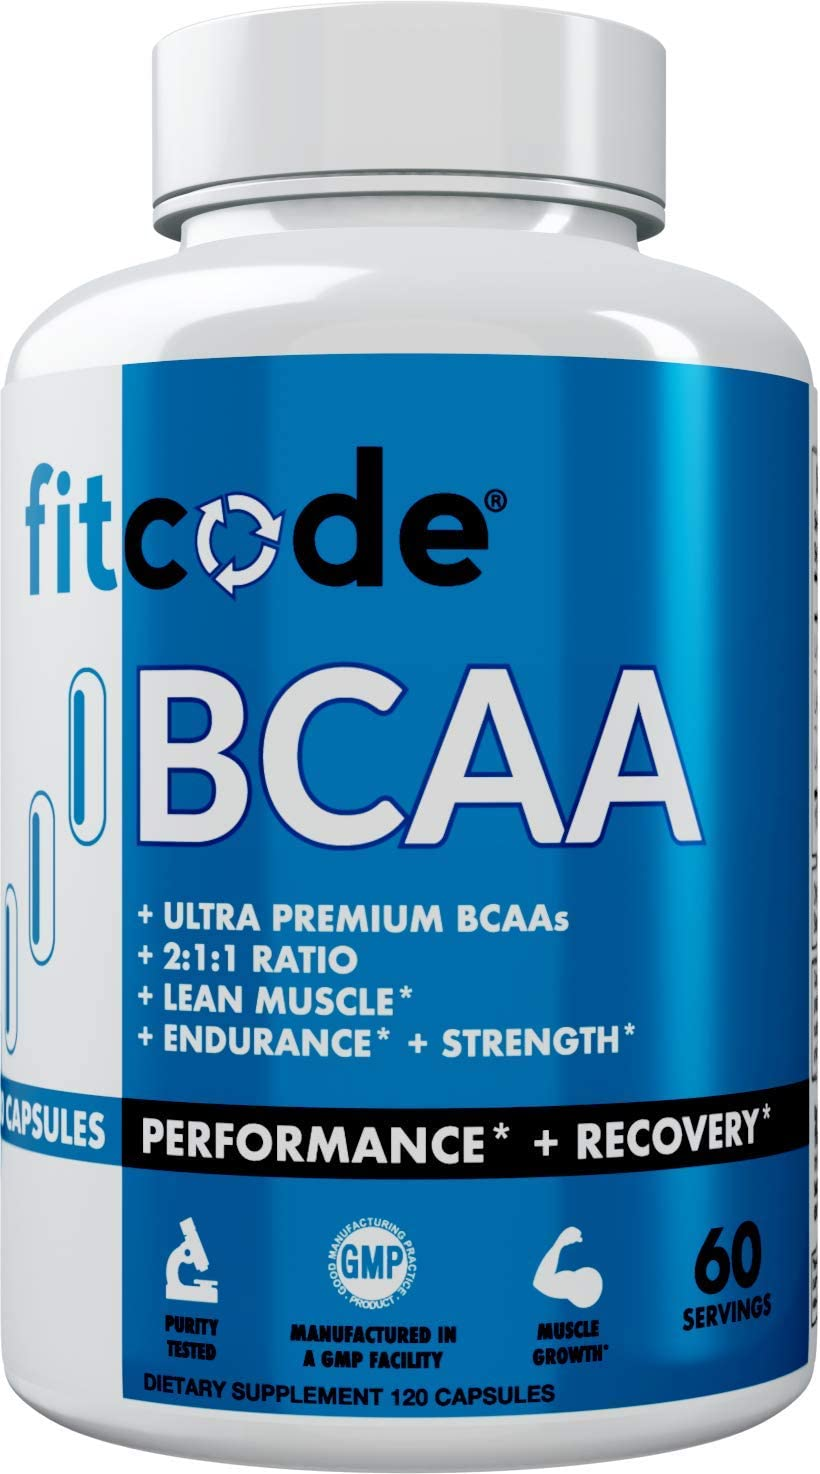 Fitcode Ultra Premium BCAAs with 5G of Pure BCAAs with Proven 2 1 1 Ratio of Amino Acids to Help Post Workout Recovery, Lean Muscle Growth, Endurance, Capsules 60 Servings